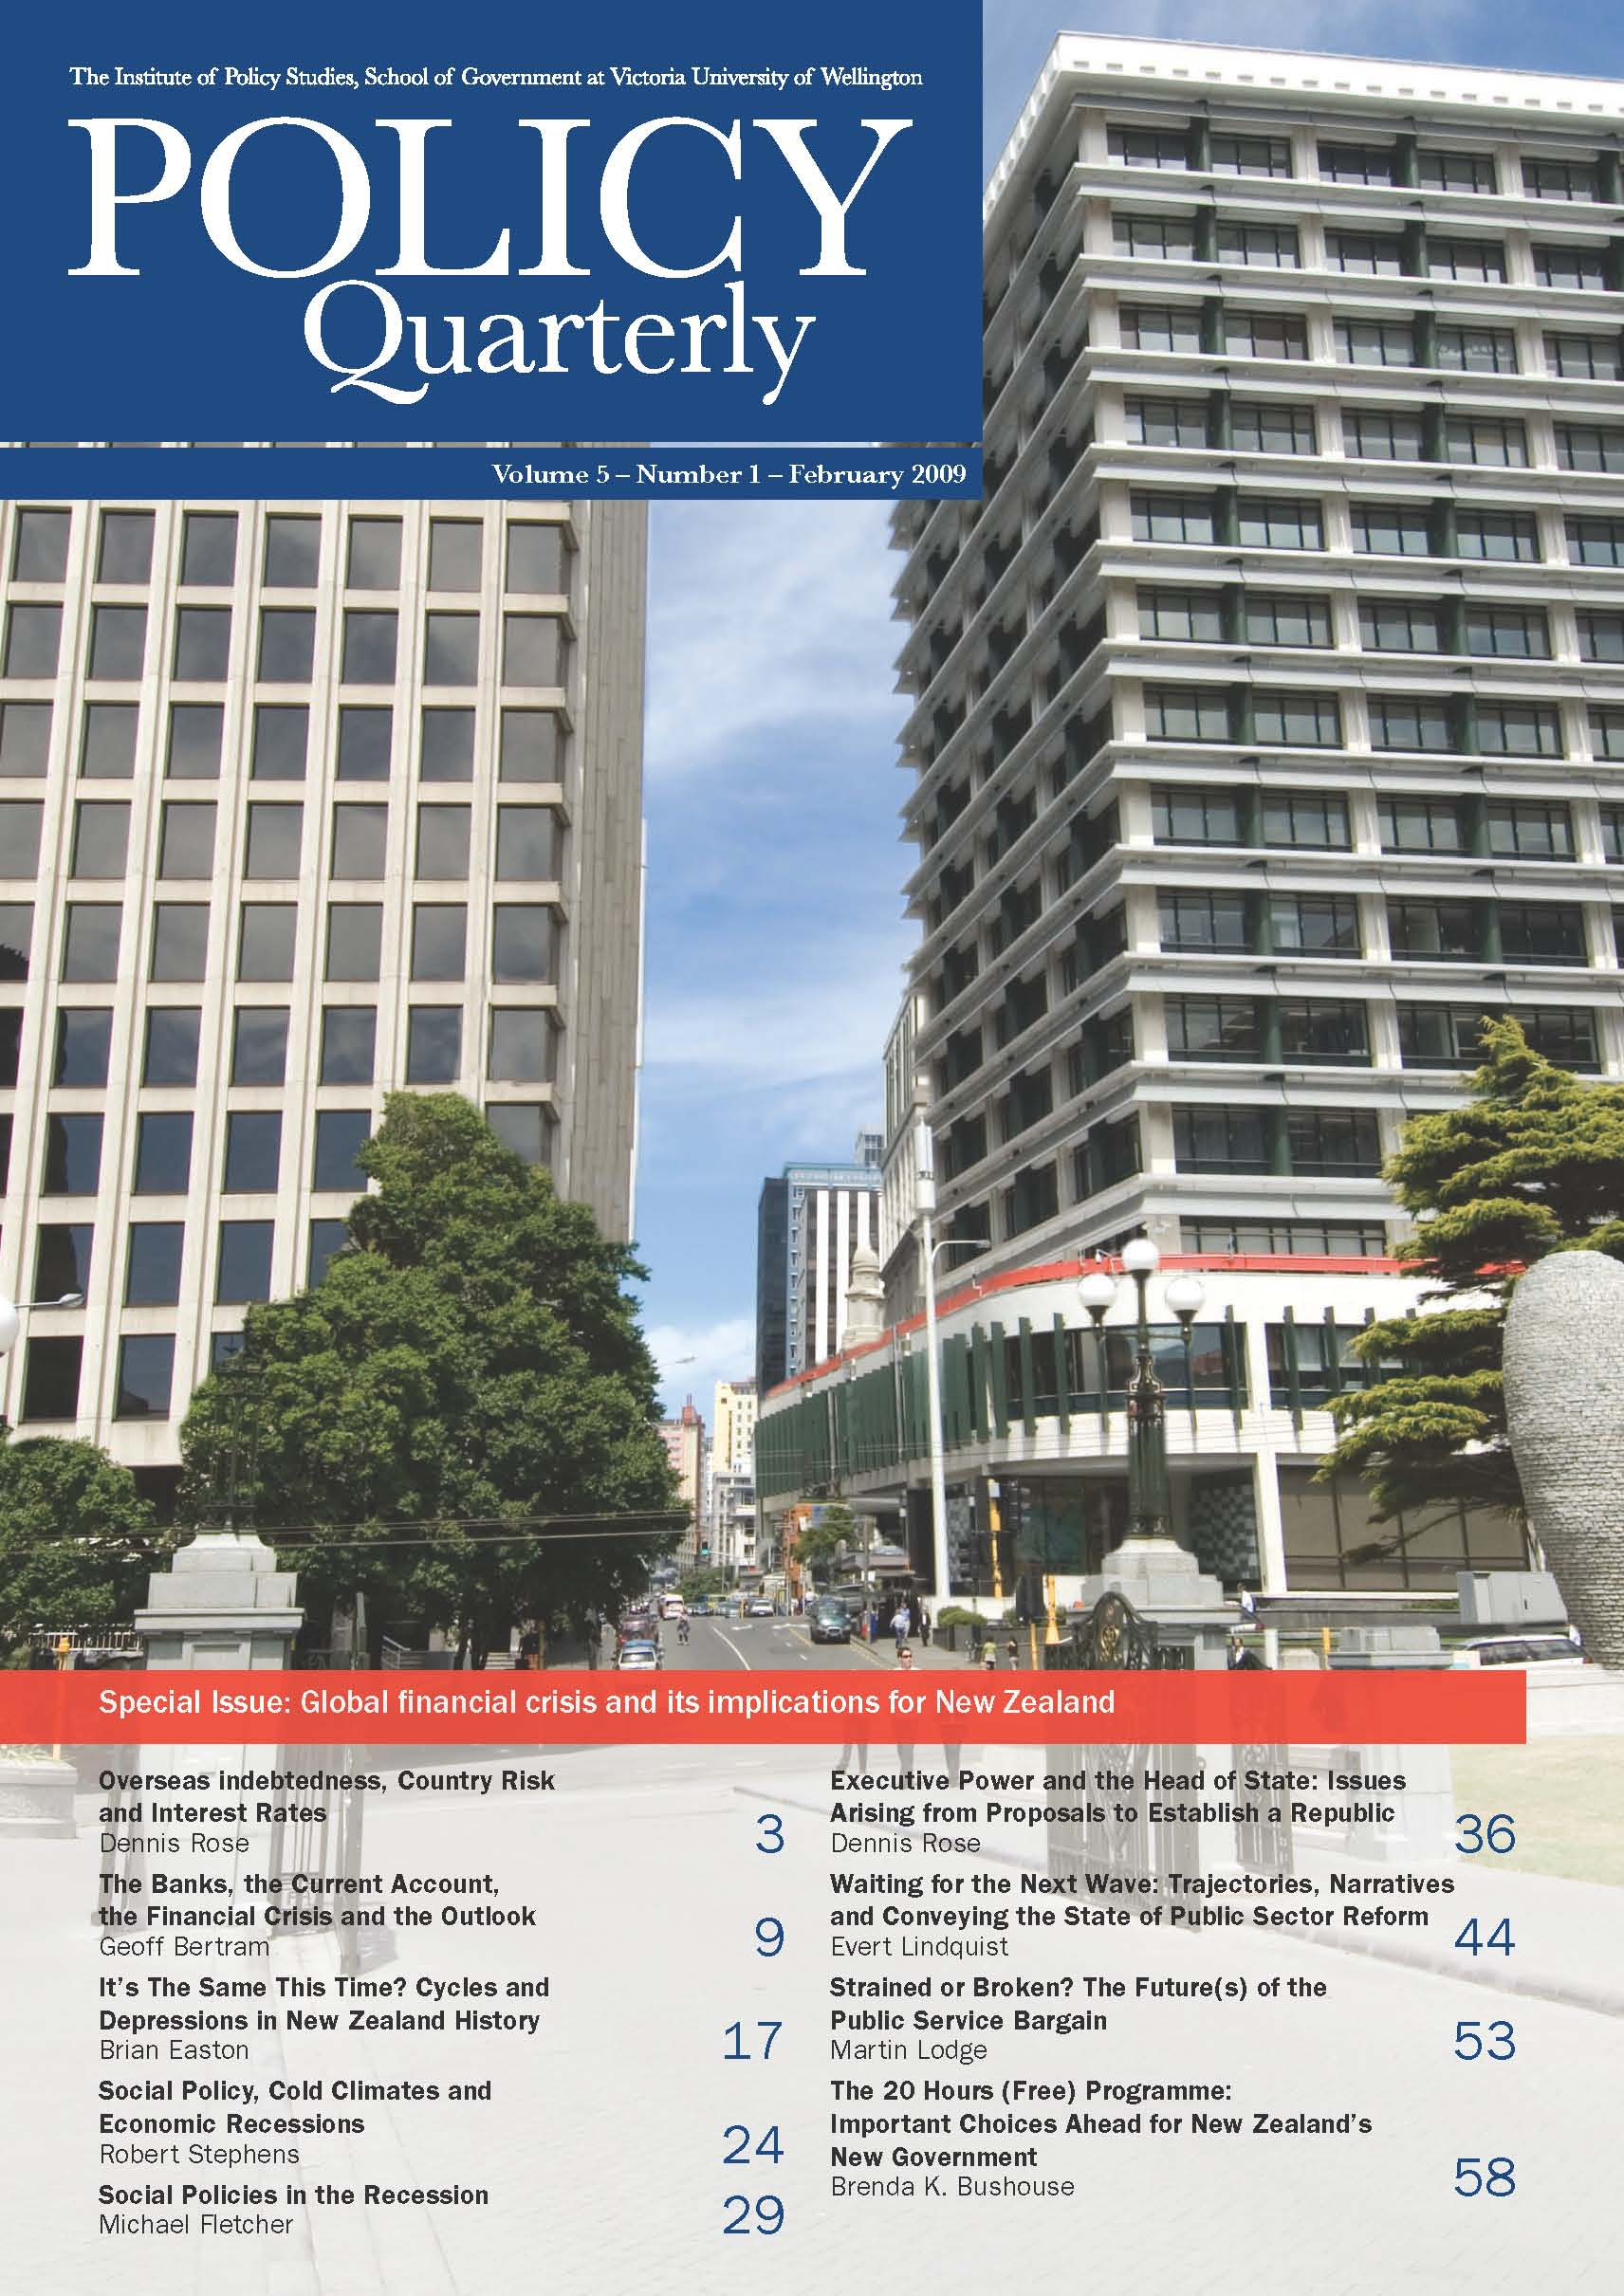 Policy Quarterly volume 5 number 1 2009